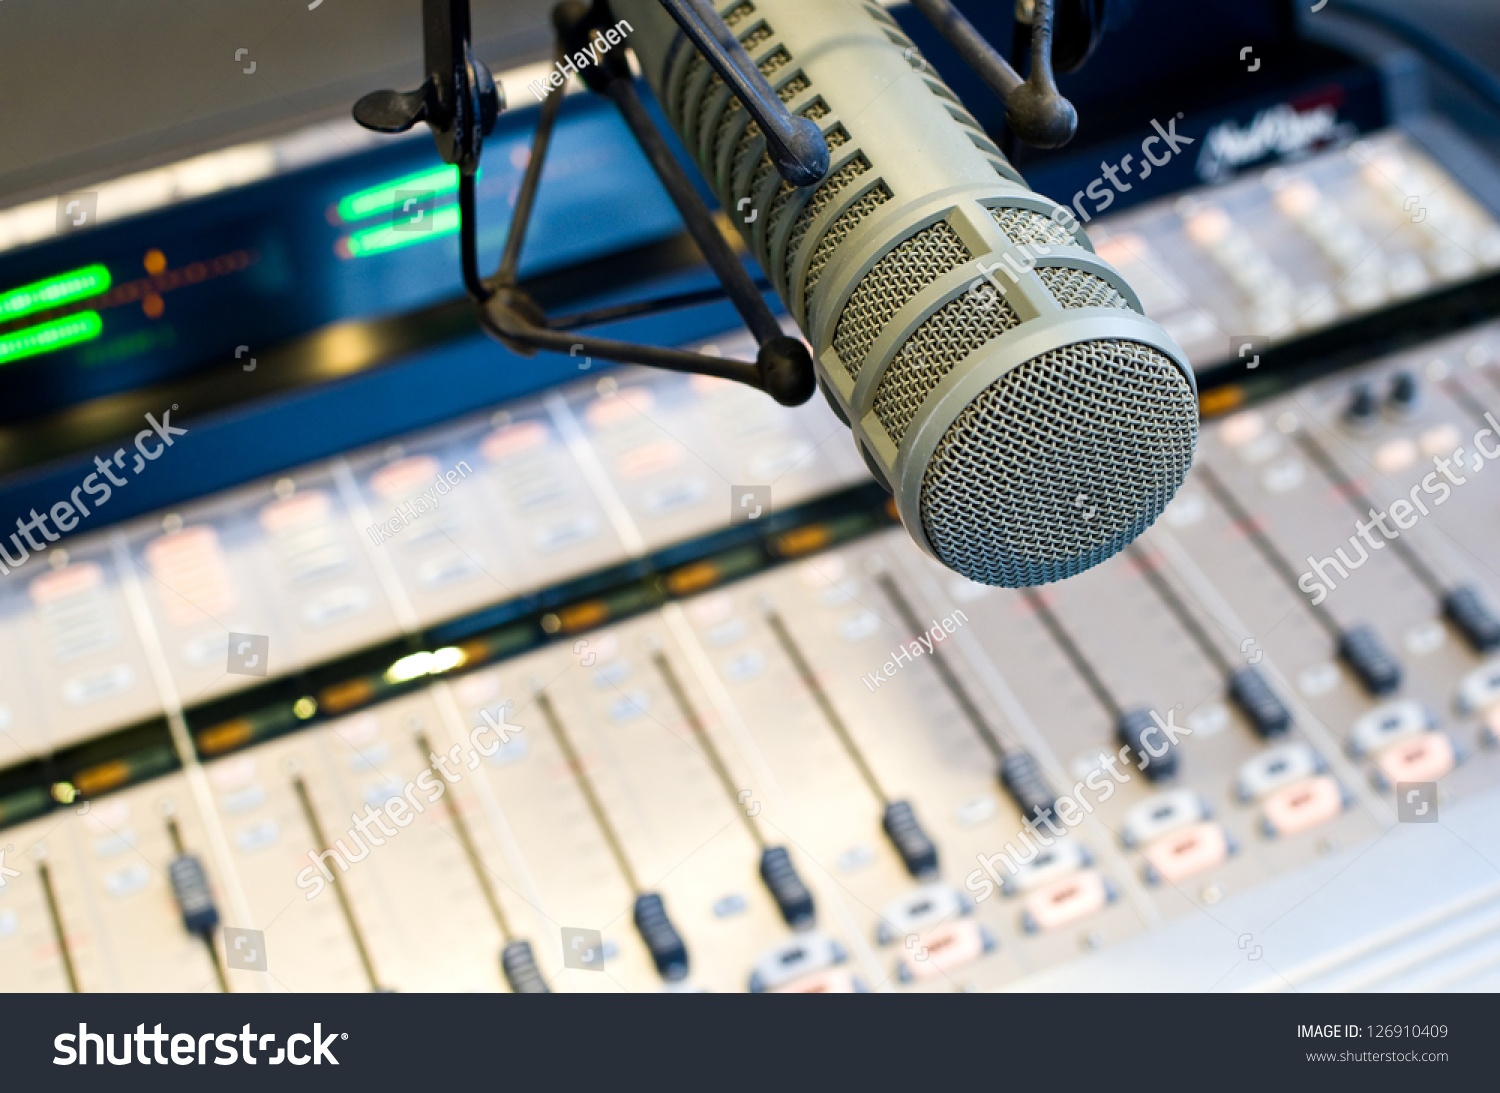 Radio Station Microphone Mixer Stock Photo Edit Now 126910409 Low Cost Mic And